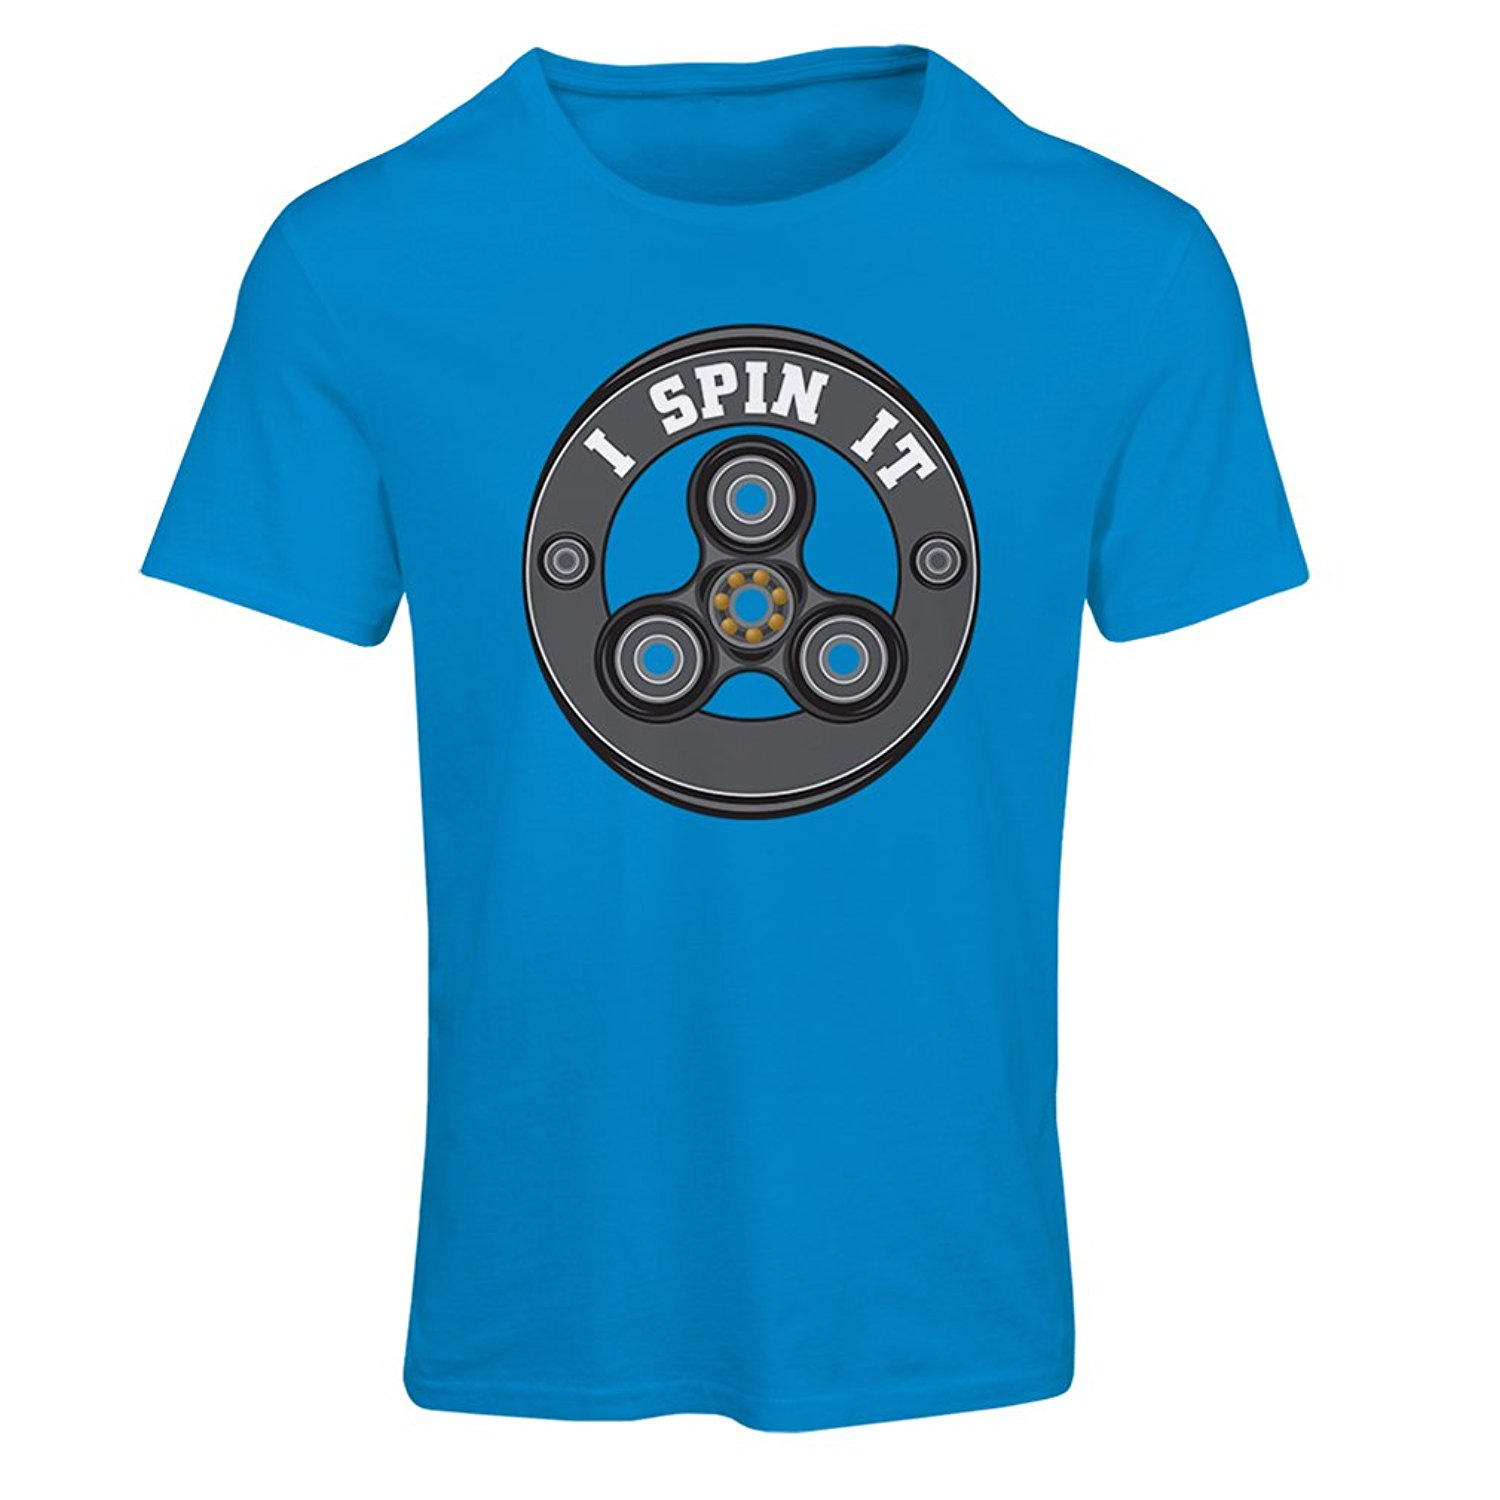 Gildan T shirts for men I Spin it - cool gadgets enthusiast - Fidget Hand Spinner Toy EDC